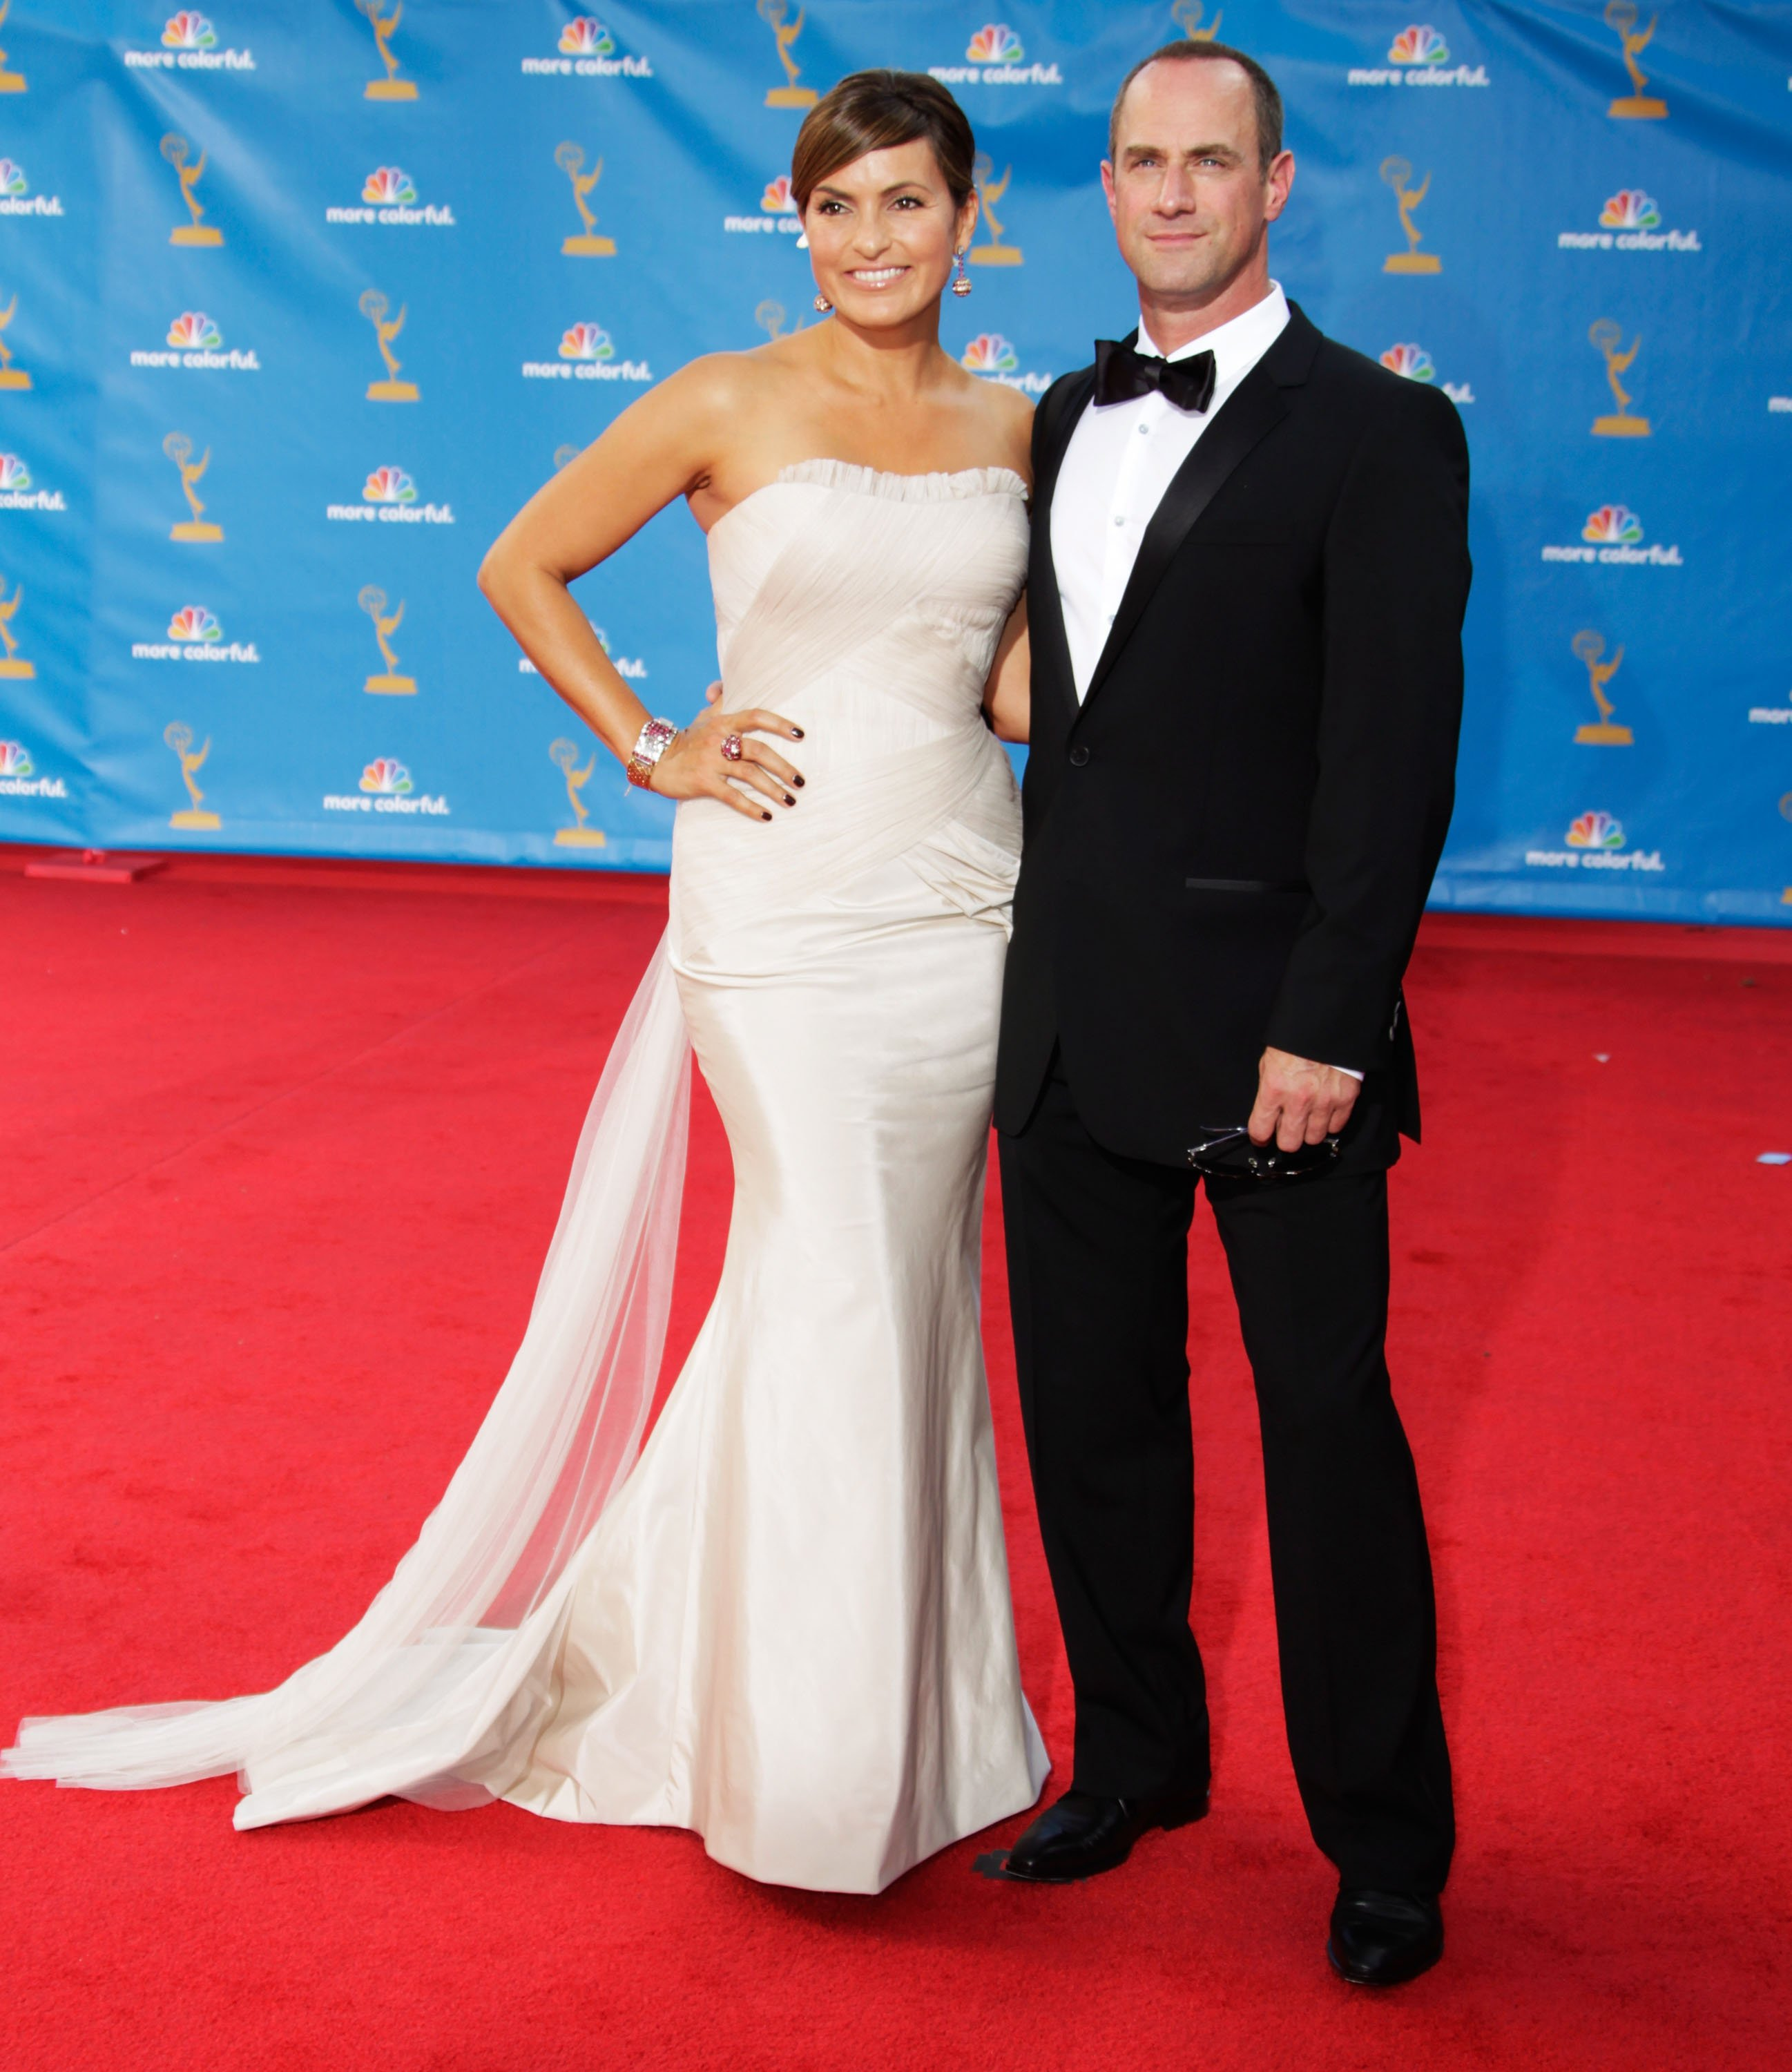 Mariska Hargitay and Christopher Meloni arrives at the 62nd Annual Primetime Emmy Awards held at the Nokia Theatre L.A. Live on August 29, 2010  | Photo: GettyImages